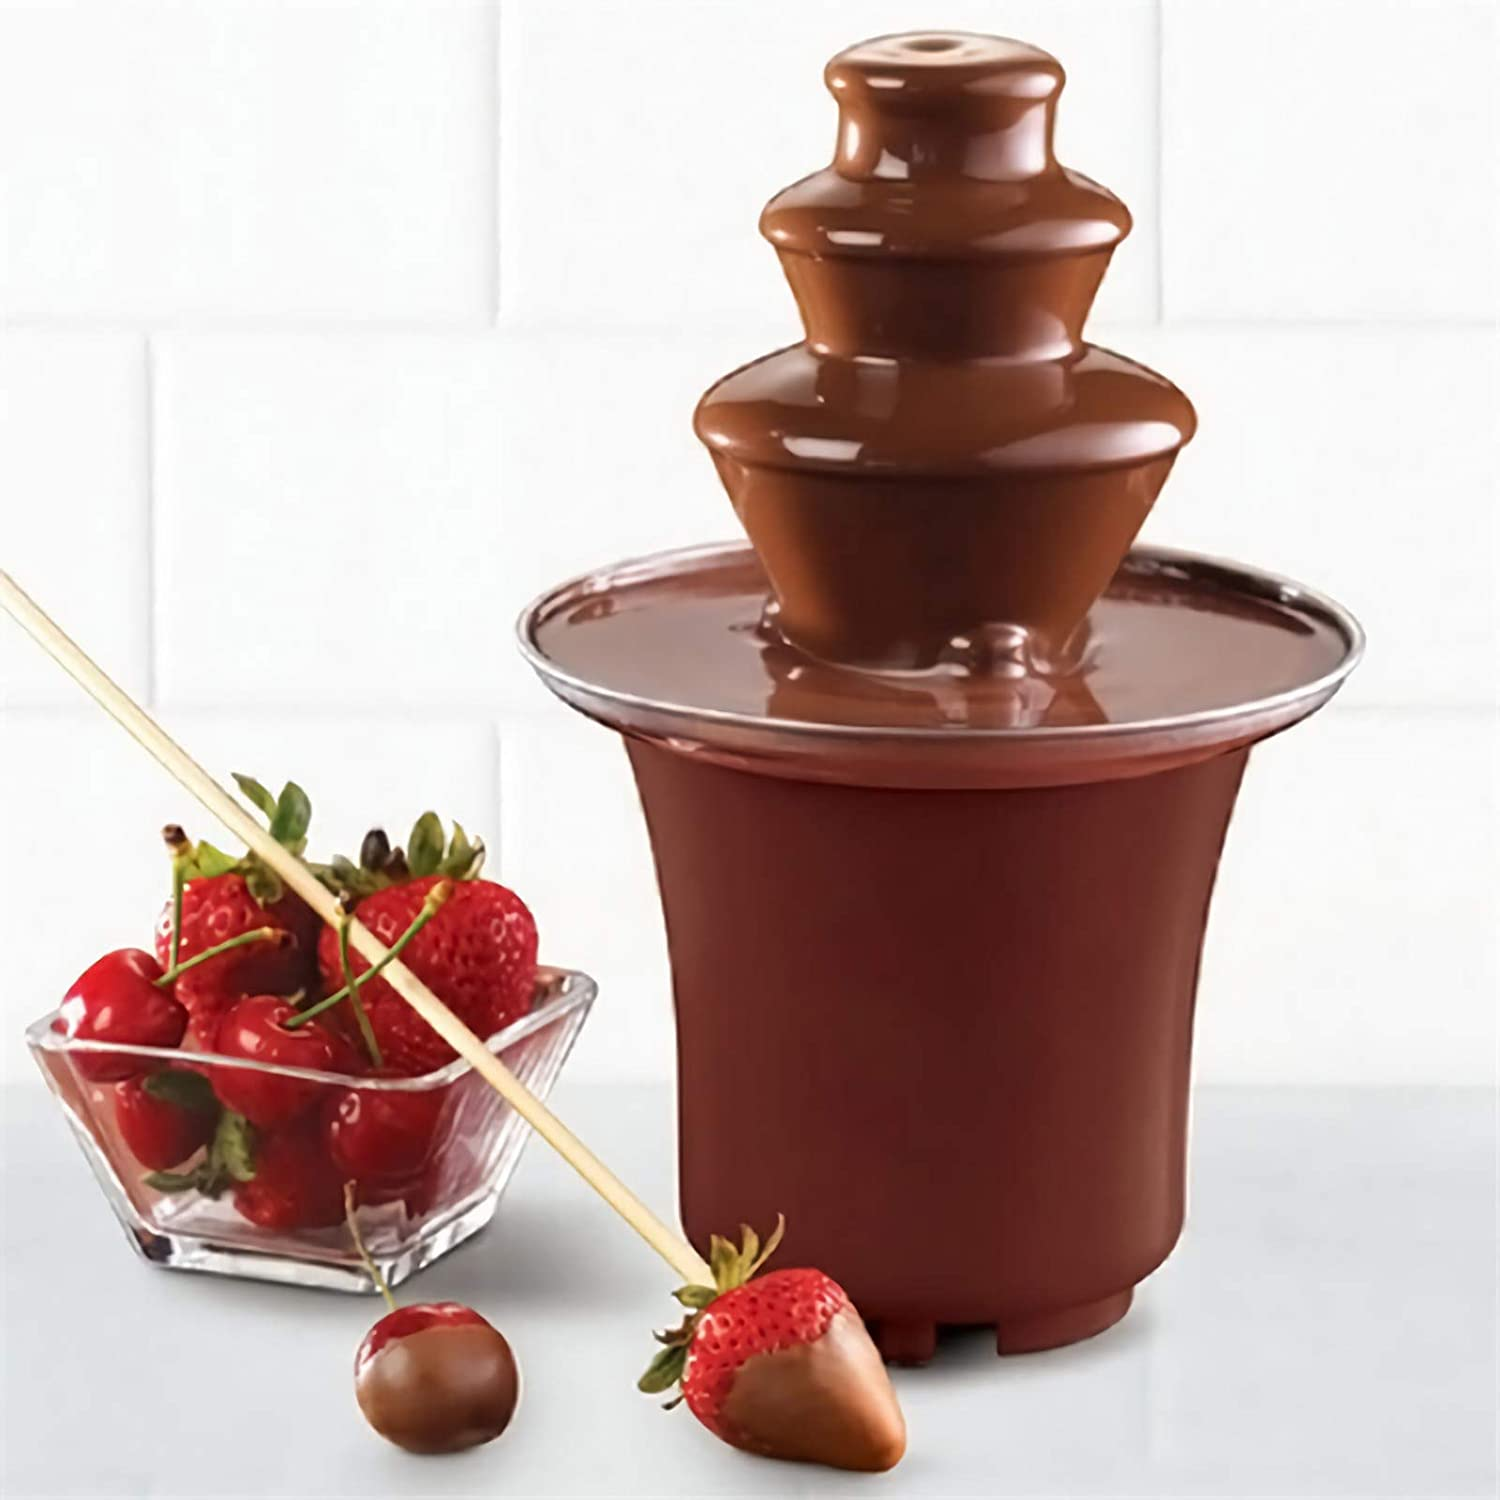 Chocolate Fondue Electric Fountain 3-Tier Melting Machine Stainless Steel Pots Dessert for Melted Chocolate, Candy, Butter, Cheese, Caramel Dip Mini Size, 1.5-2 Pound Capacity Oranlife